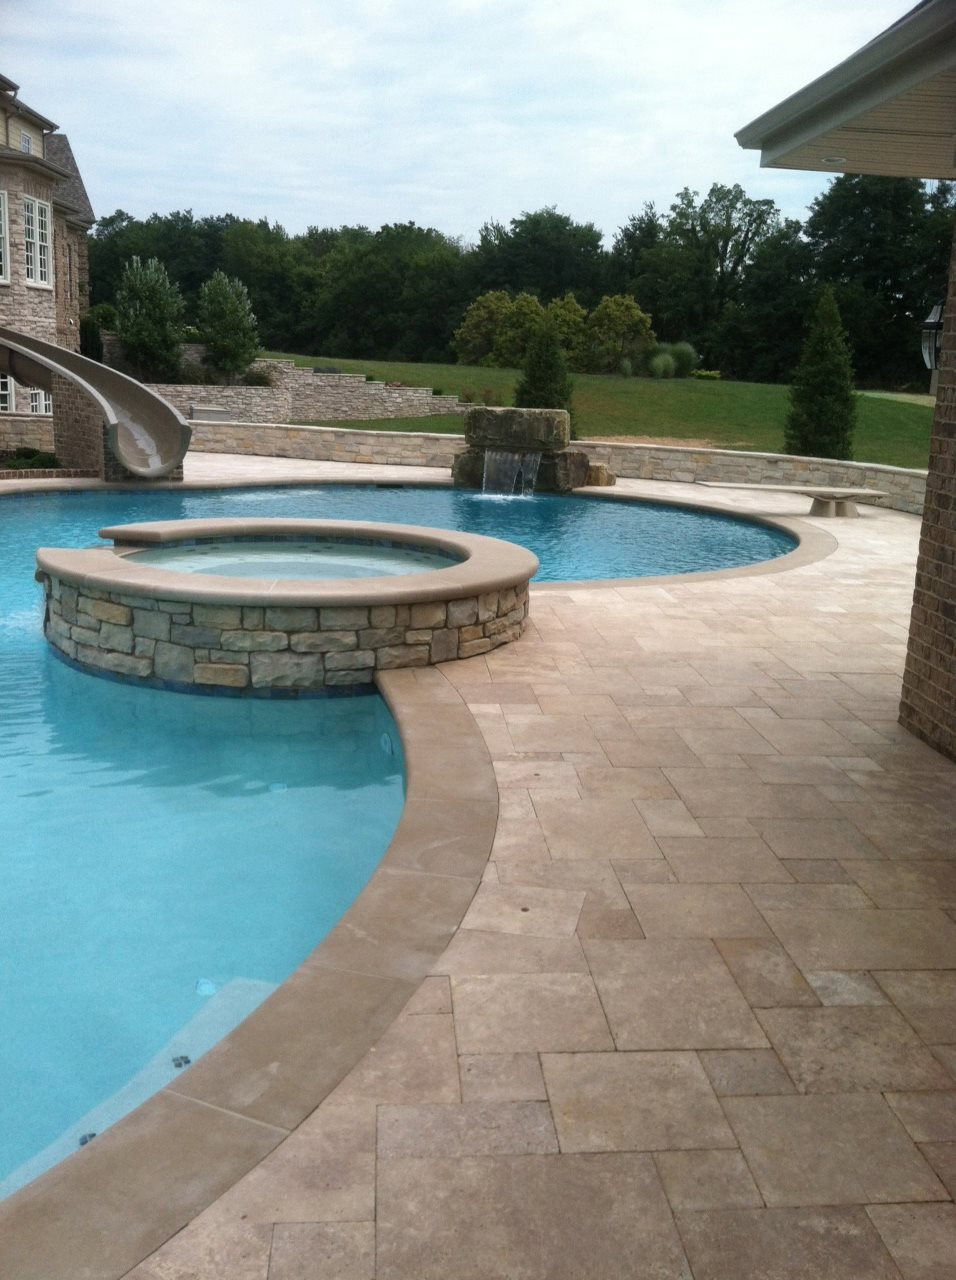 Pool Company Dayton Ohio Travertine Pavers Around